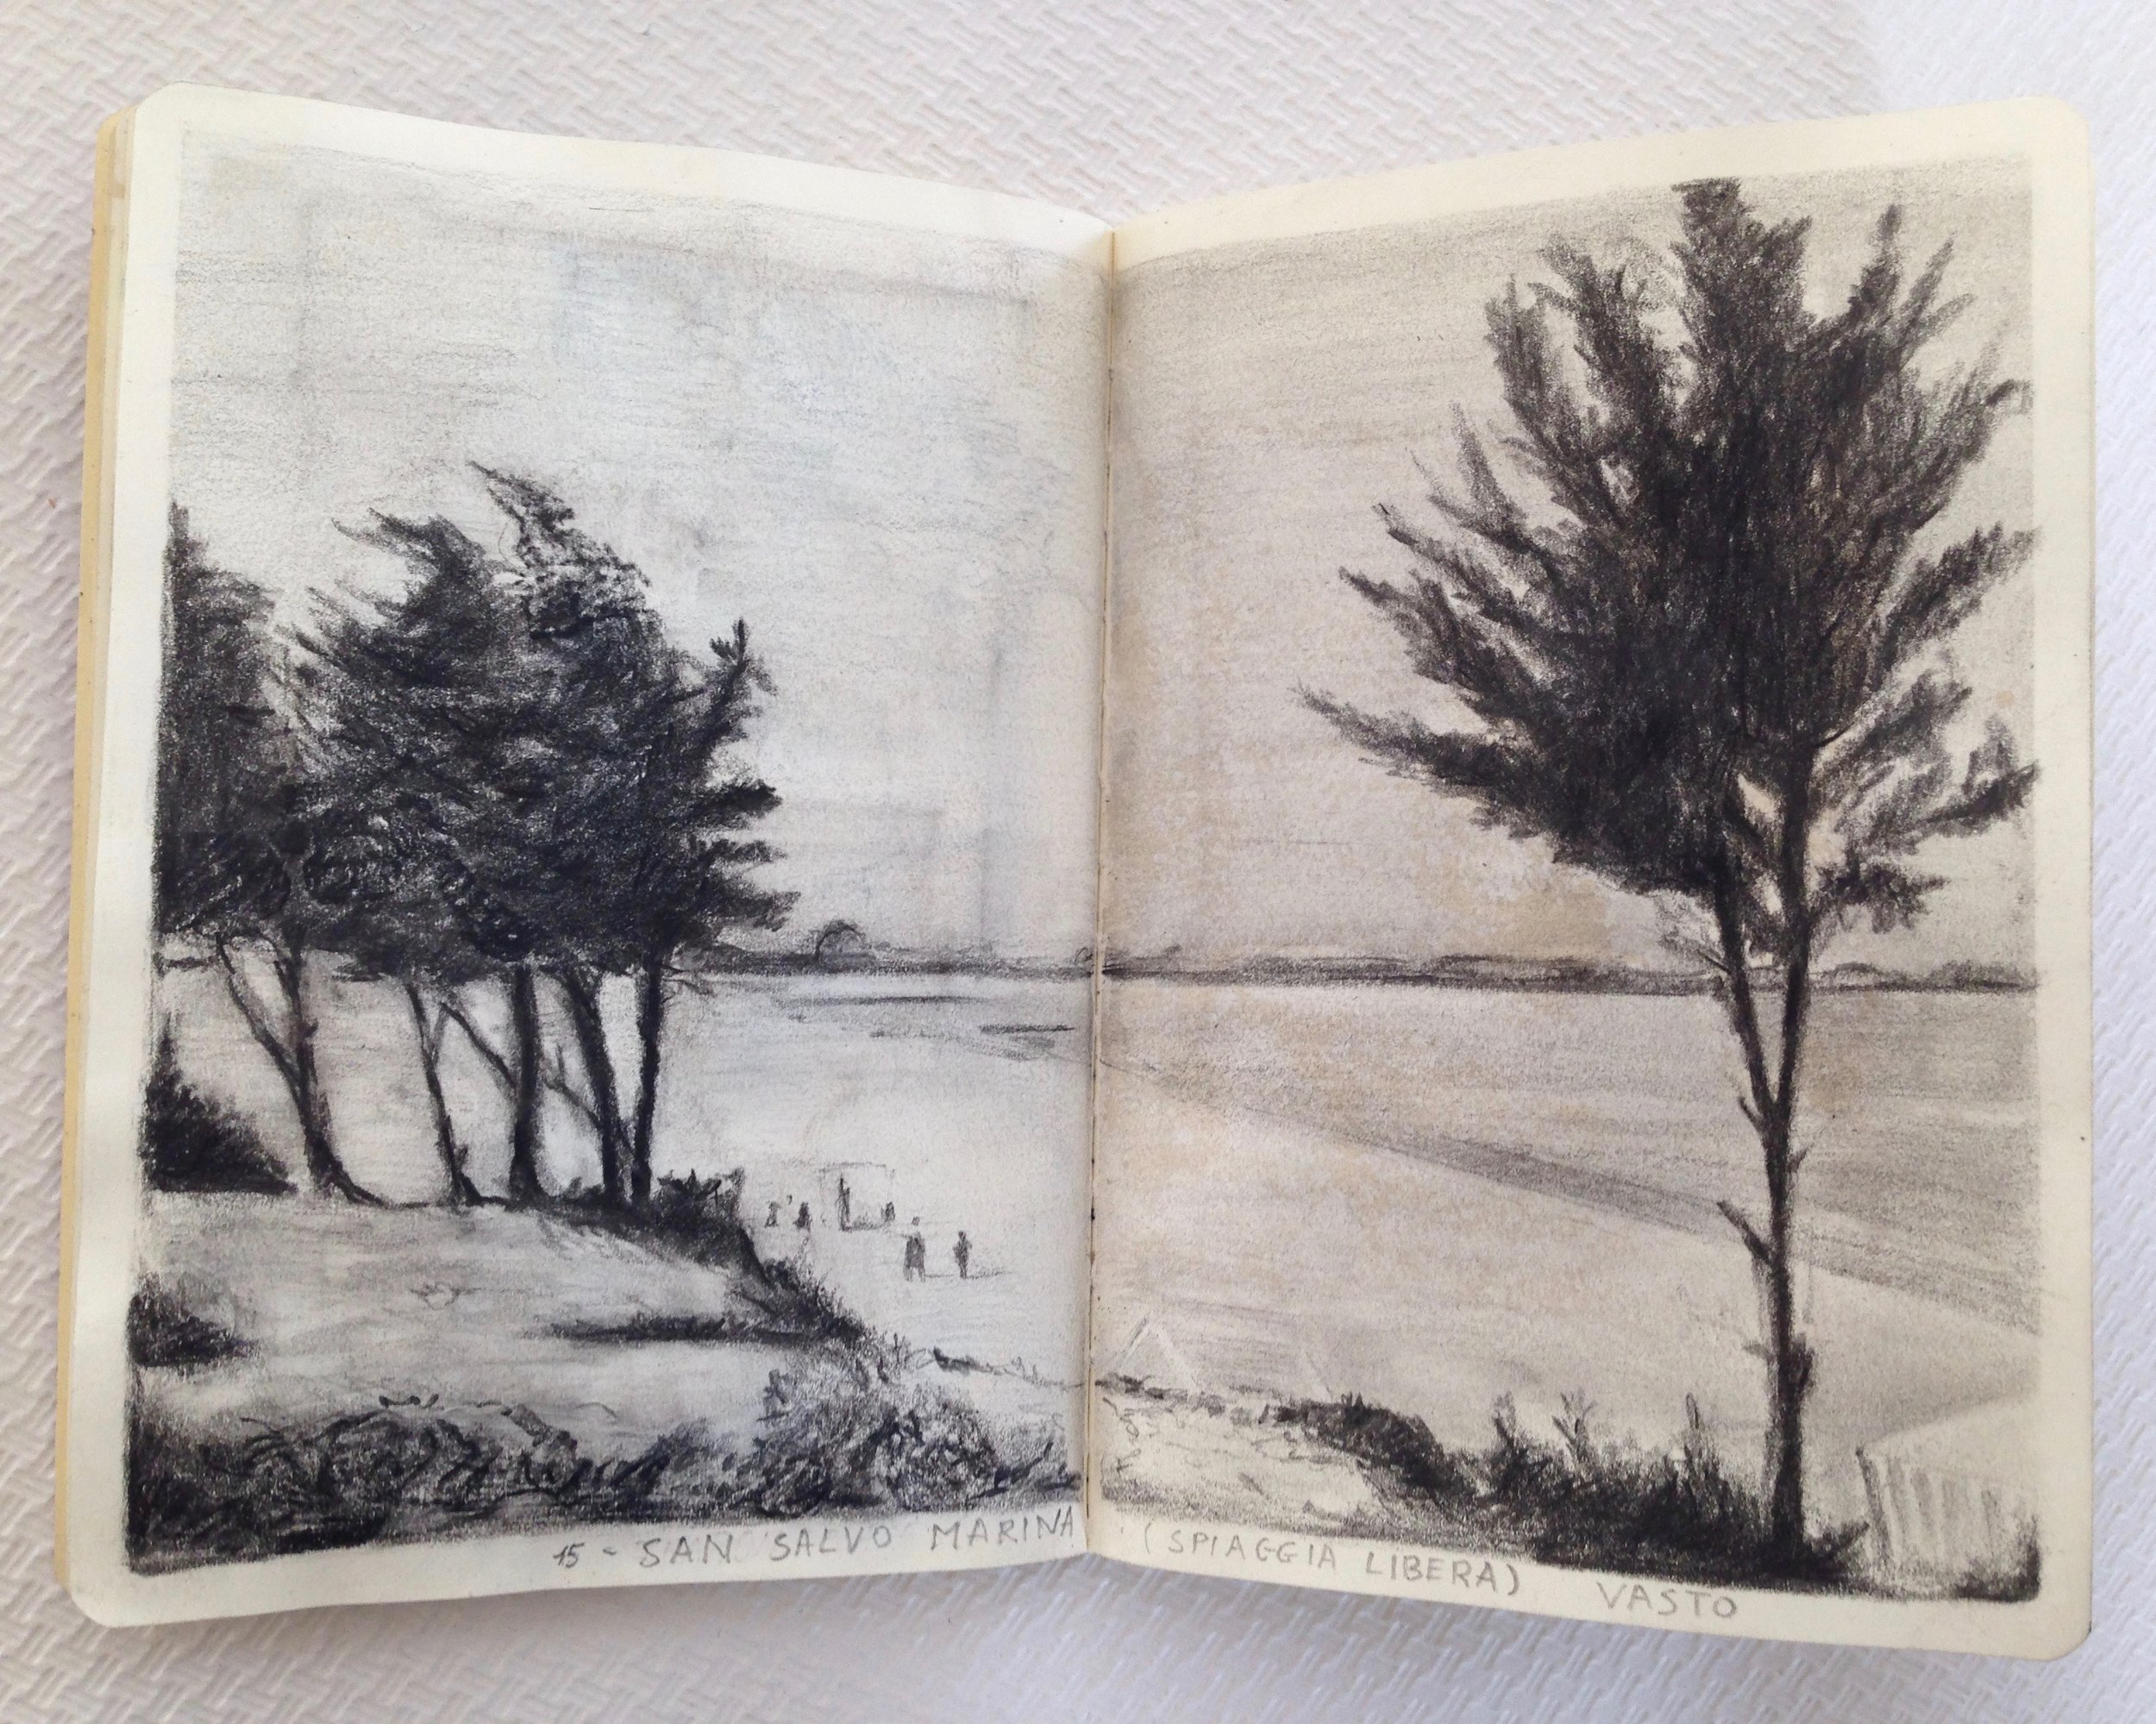 passeggiata silenziosa - pencil drawingpersonal project during the workshop with J. Consejo2017